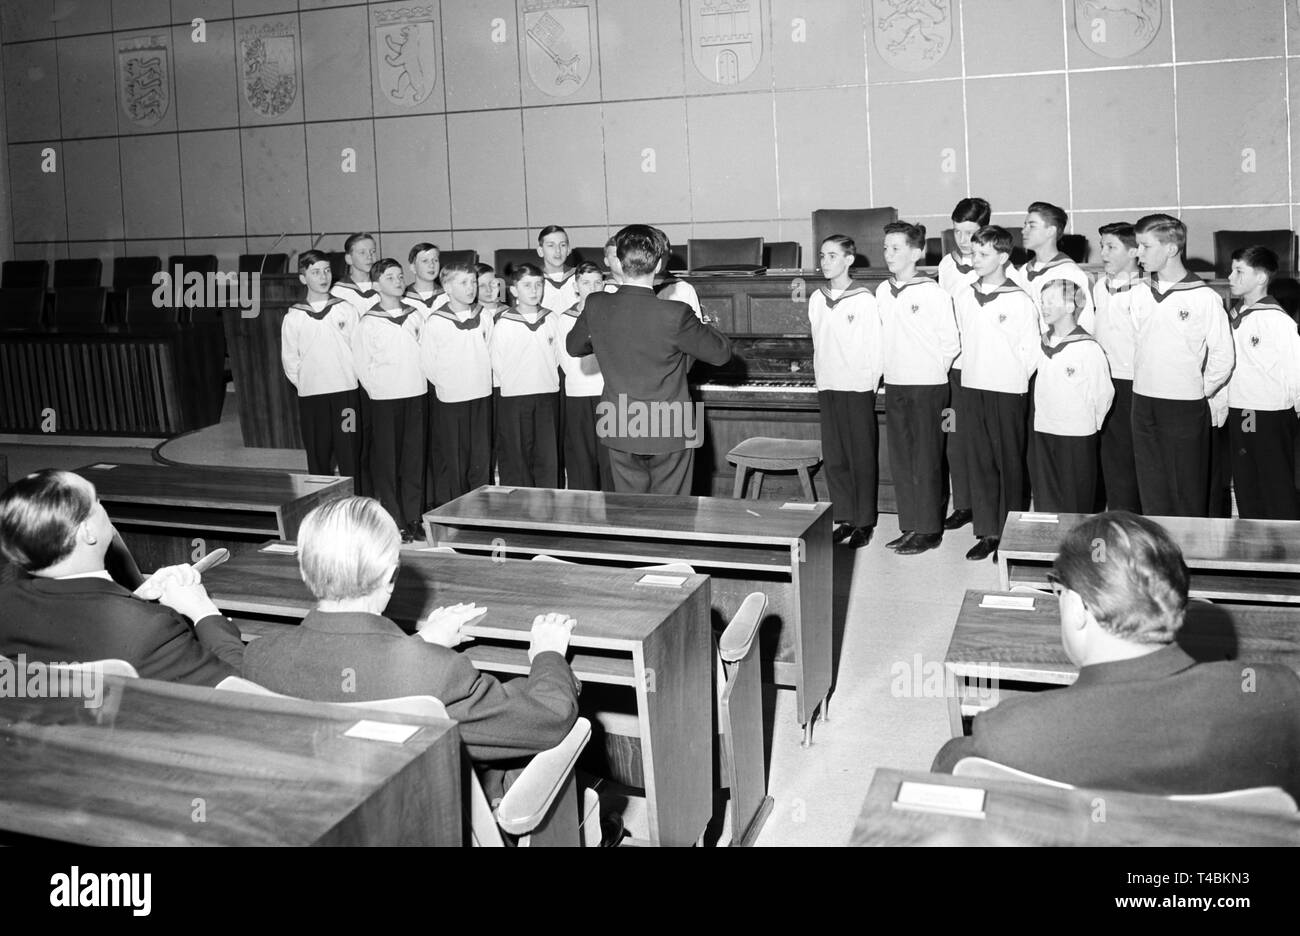 The Vienna Boys' Choir, which is on a tour through Germany, serenades for former German chancellor Konrad Adenauer (sitting, M, back) on the 12th of February in 1963 in Bonn. | usage worldwide - Stock Image